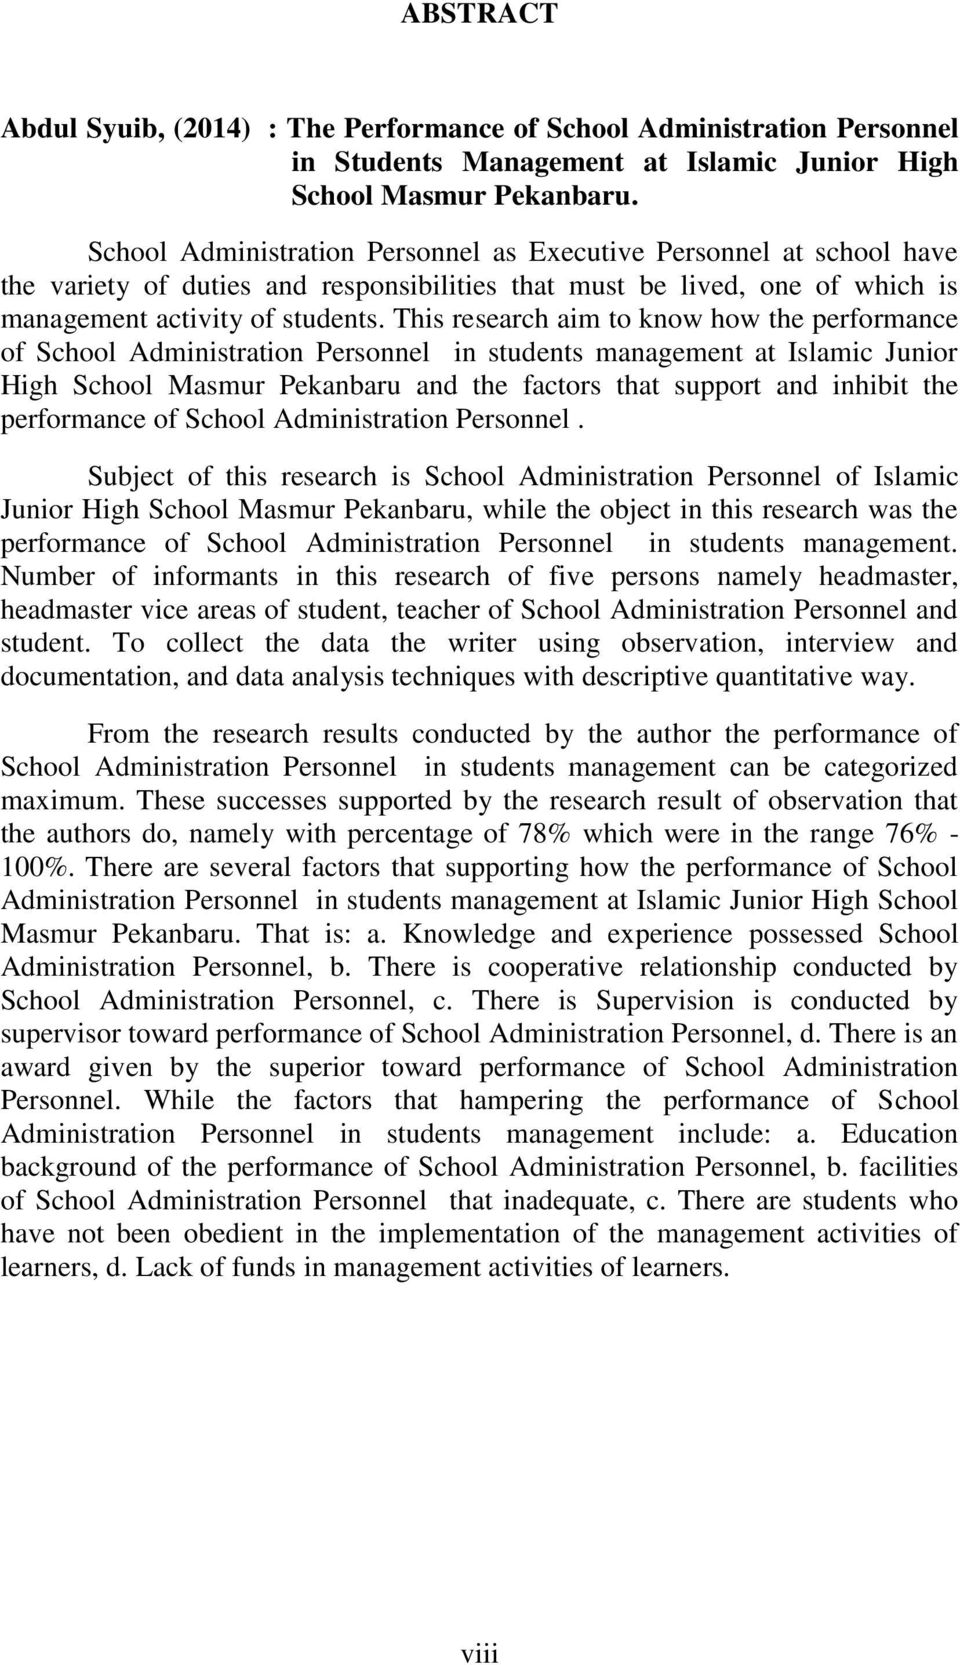 This research aim to know how the performance of School Administration Personnel in students management at Islamic Junior High School Masmur Pekanbaru and the factors that support and inhibit the